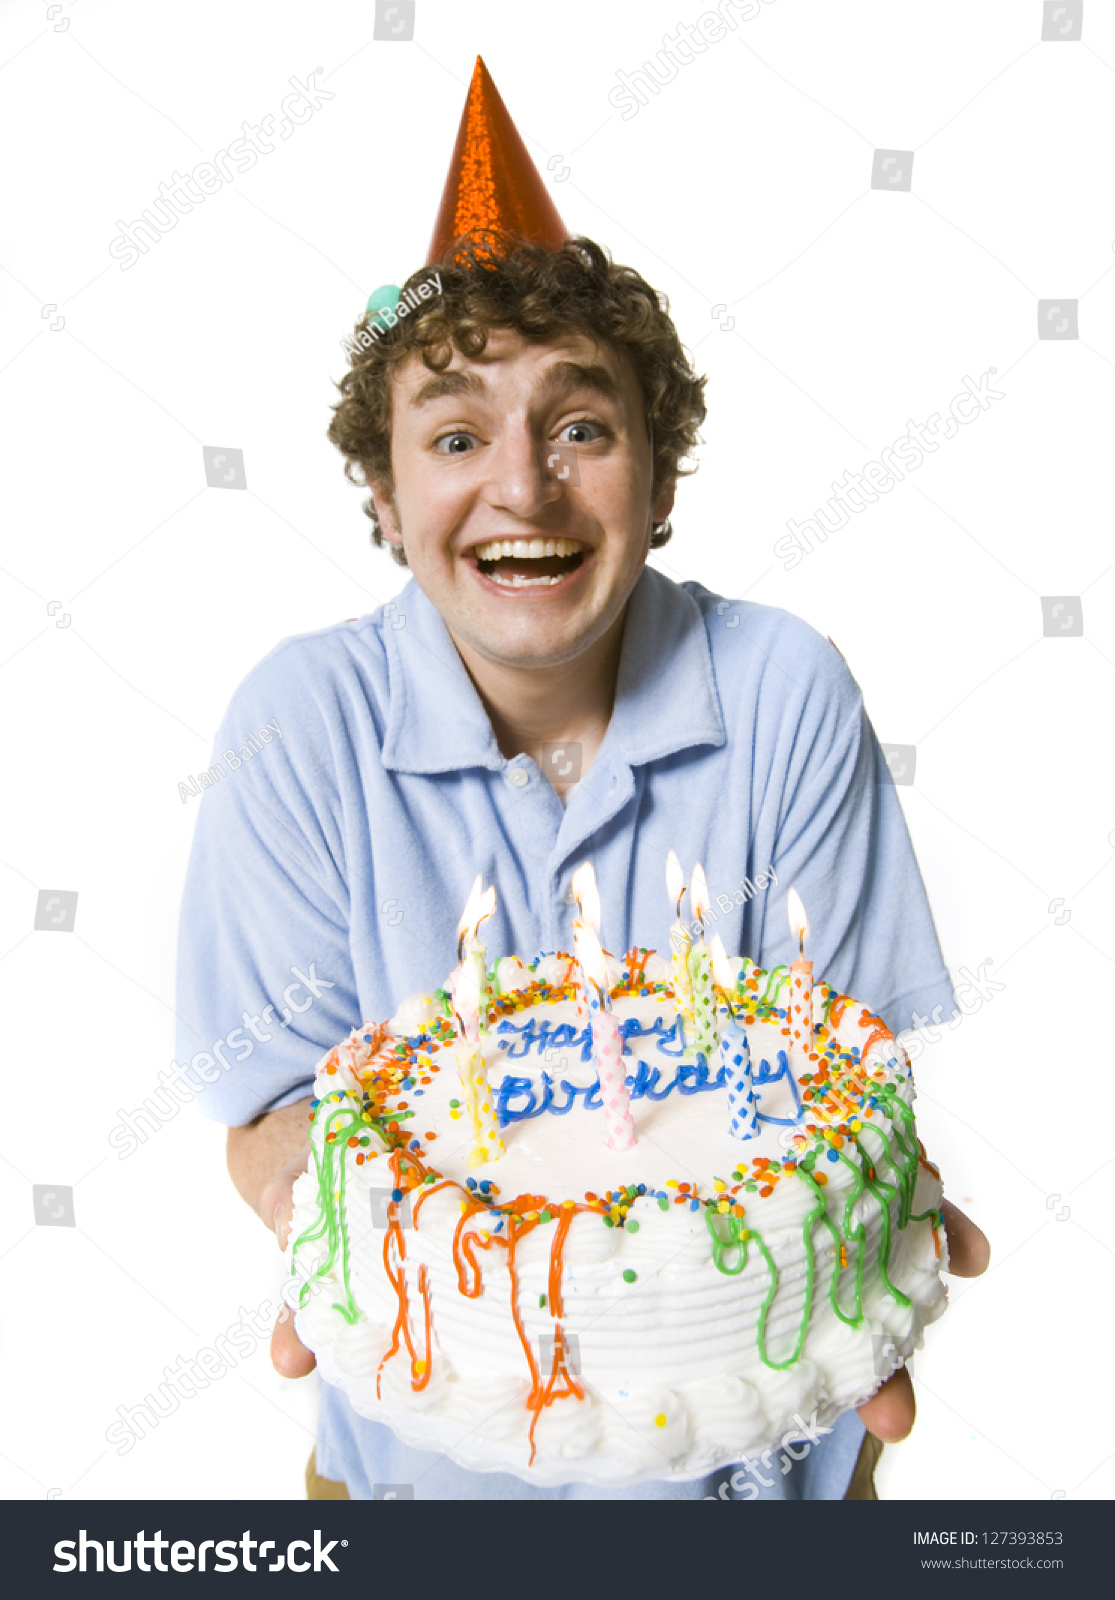 Smiling Young Man In Party Hat Holding A Birthday Cake Stock Photo ...